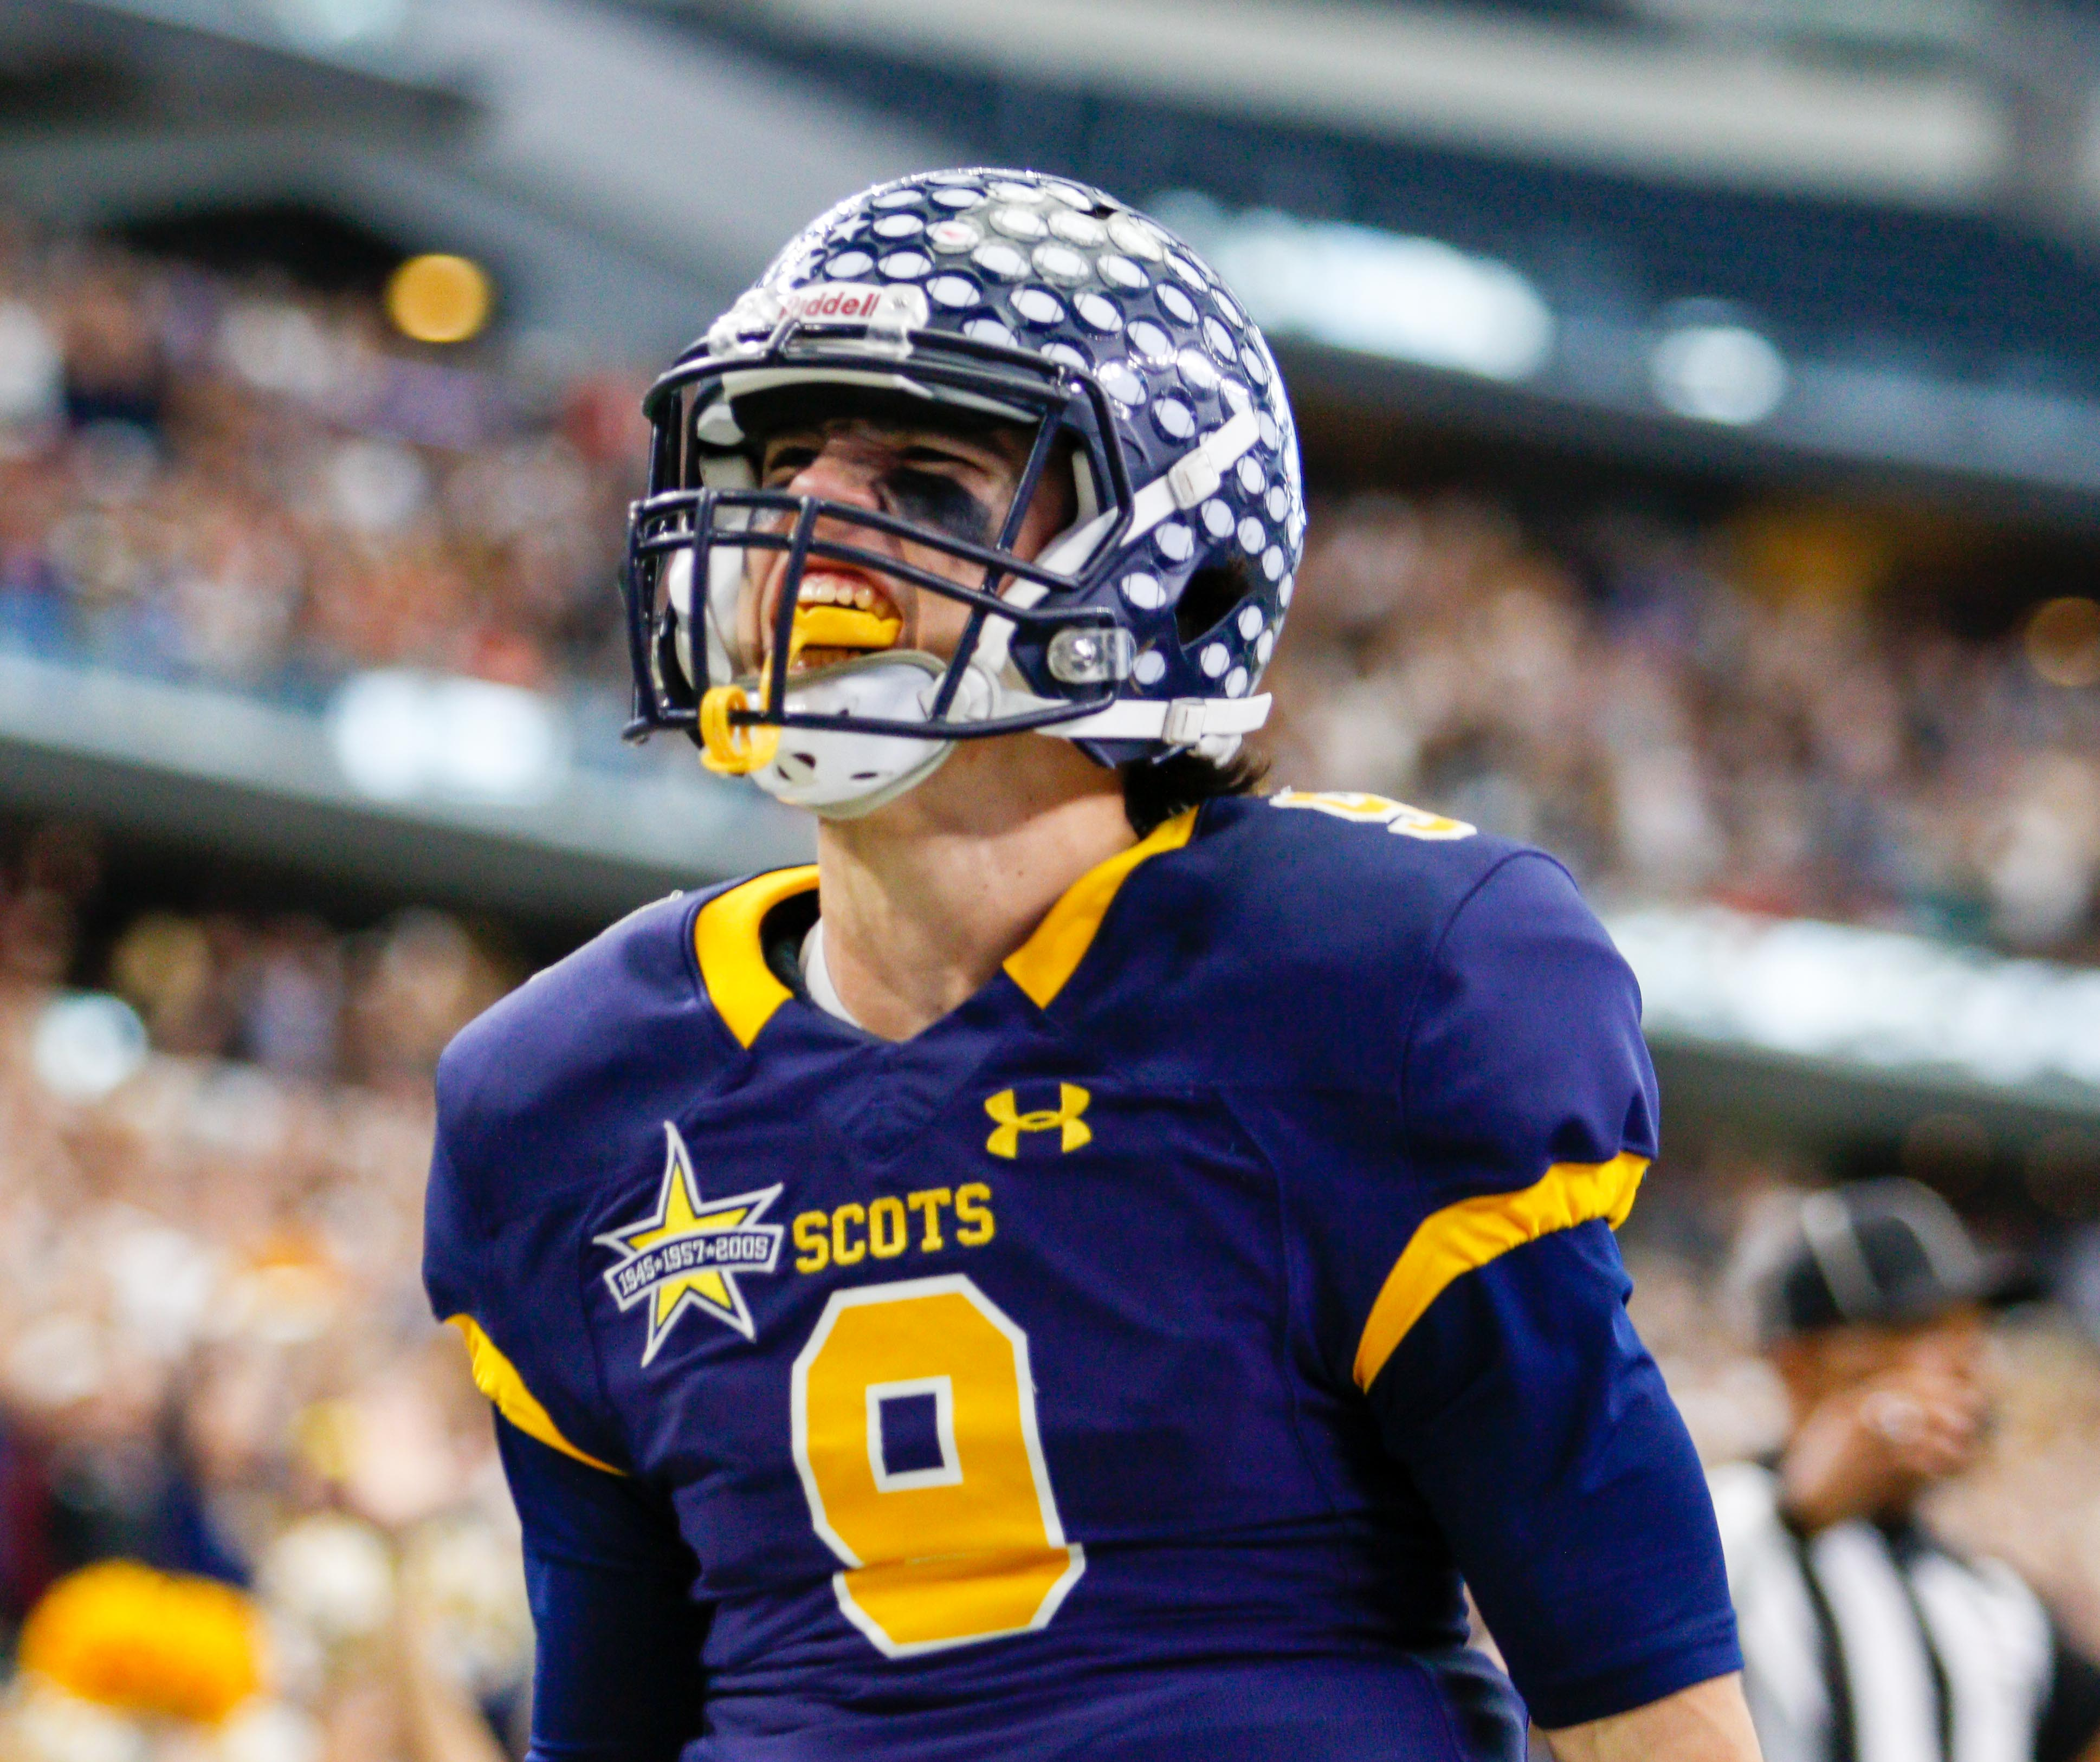 December 17, 2016 - Texas UIL 5A Div. I State Championship game between Highland Park and Temple at AT&T Stadium in Arlington, Texas. (Image Credit: John Glaser/texashsfootball.com)